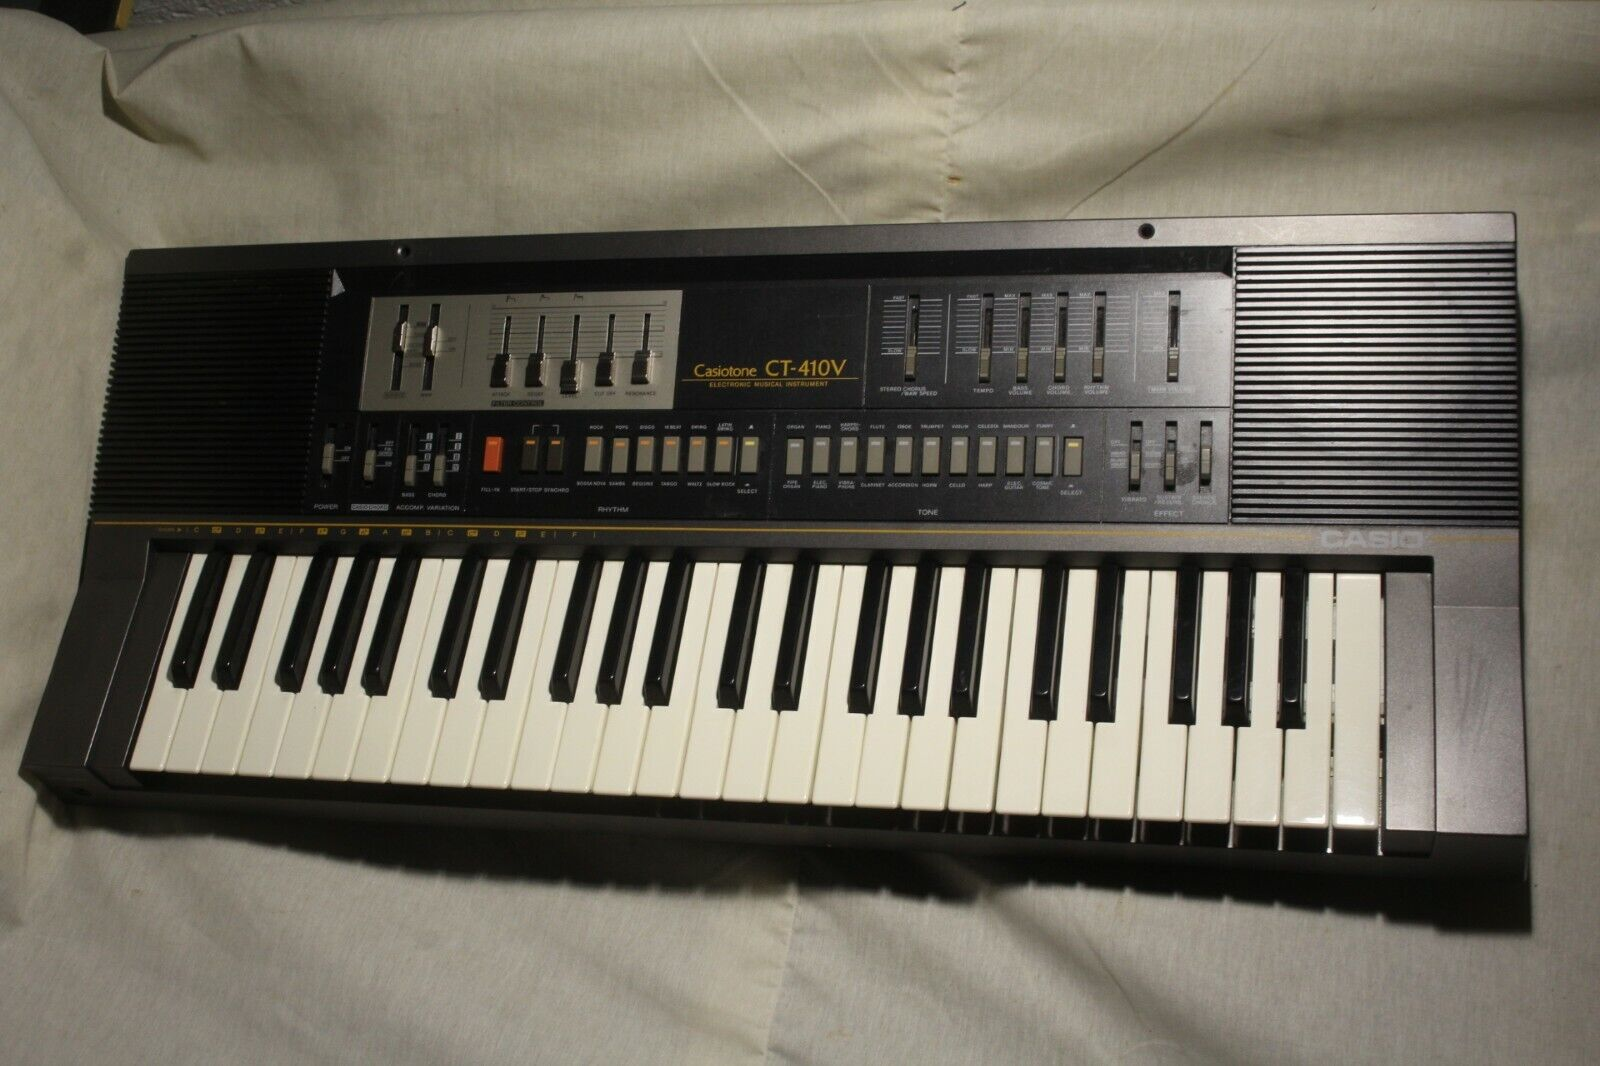 CASIO Casiotone VT 410v Keyboard